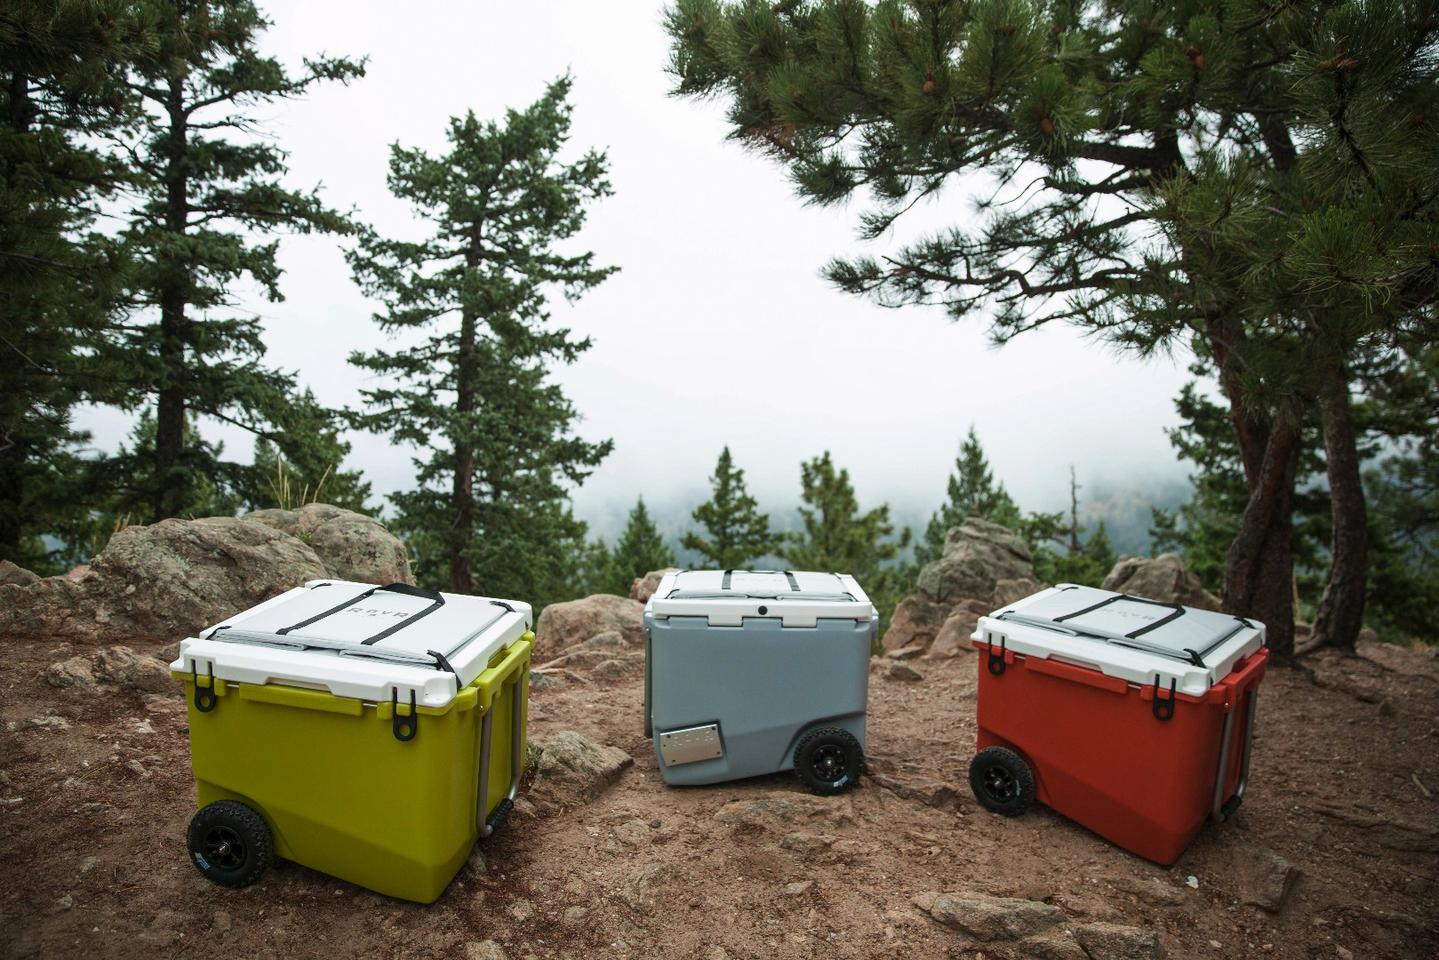 Rovr is expanding its cooler lineup with the Rollr 60